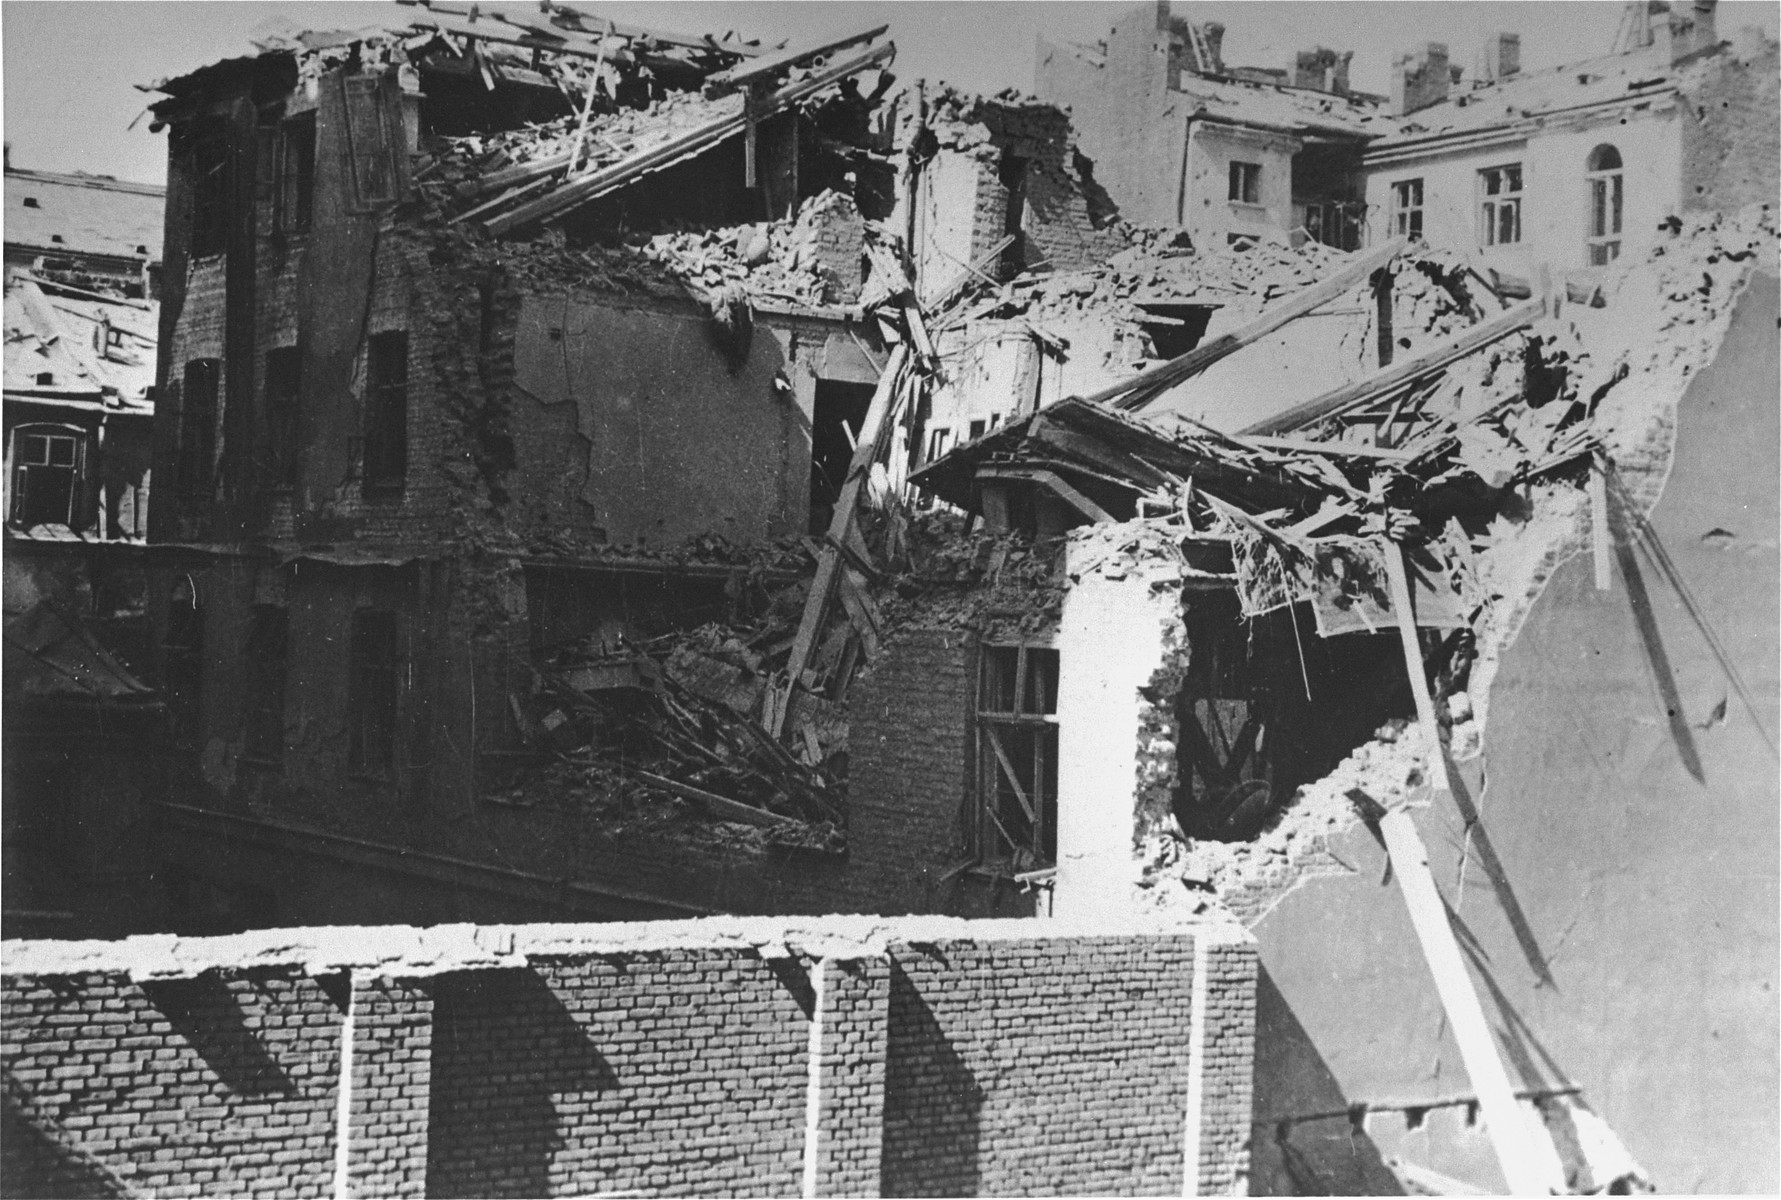 The ruins of an apartment building destroyed by the SS during the suppression of the Warsaw ghetto uprising.